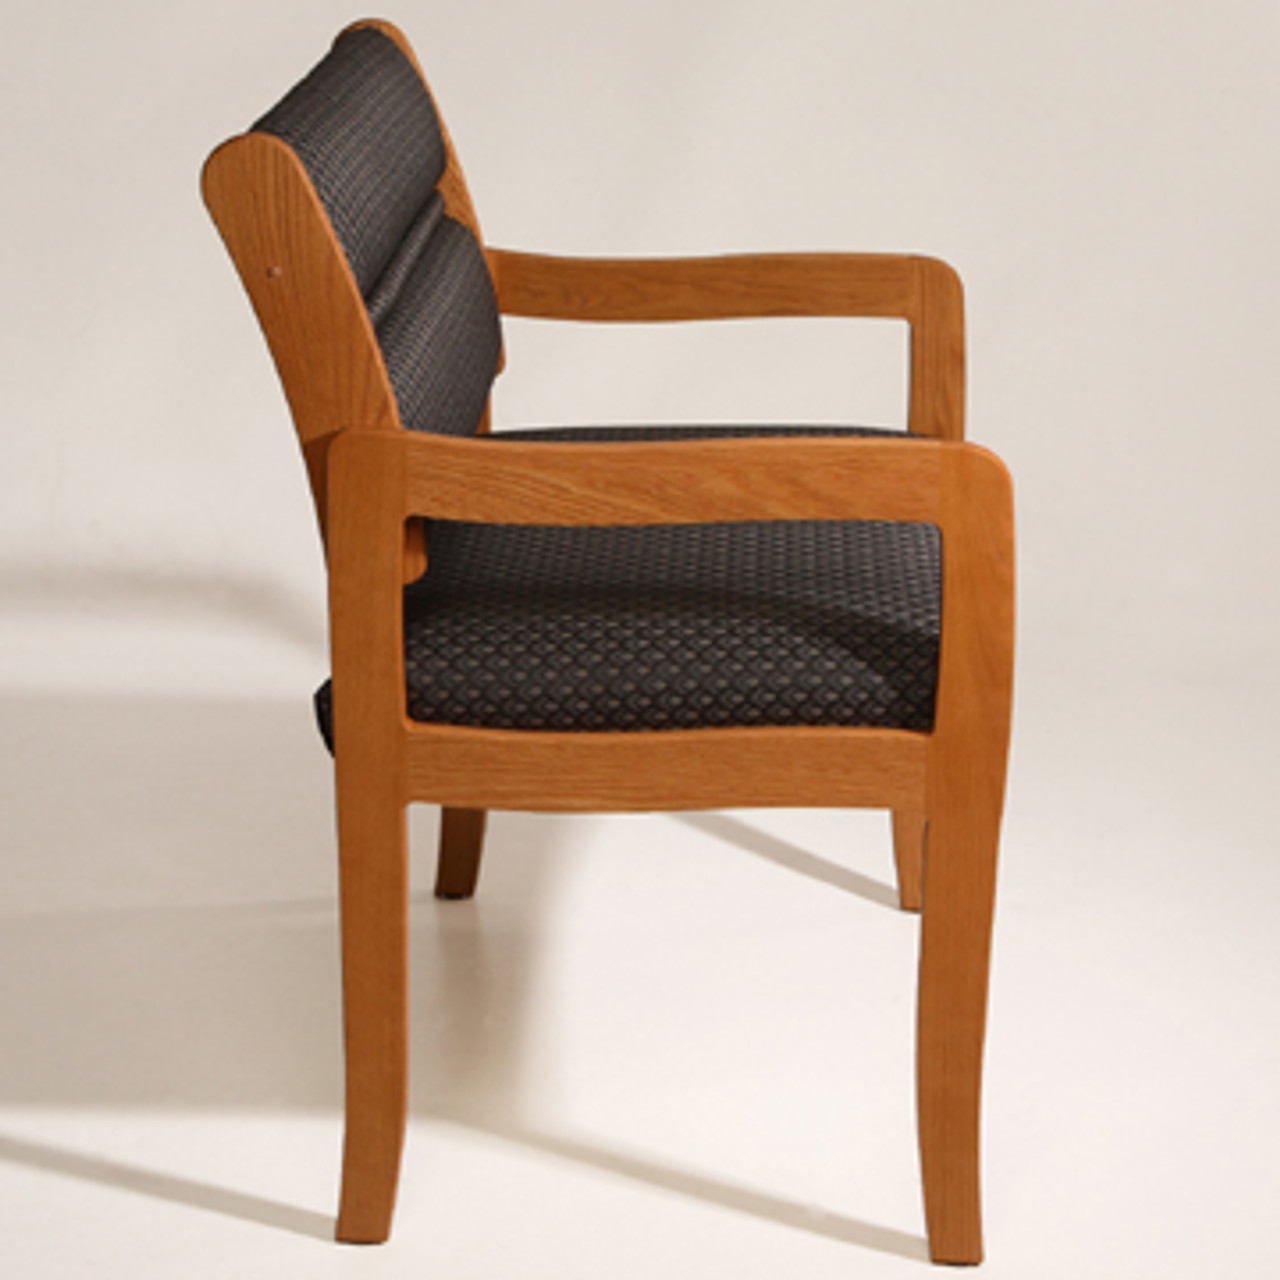 Wooden Mallet Valley Collection Three Seat Bariatric Chair, Center Arms, Standard Leg, Leaf Green, Light Oak